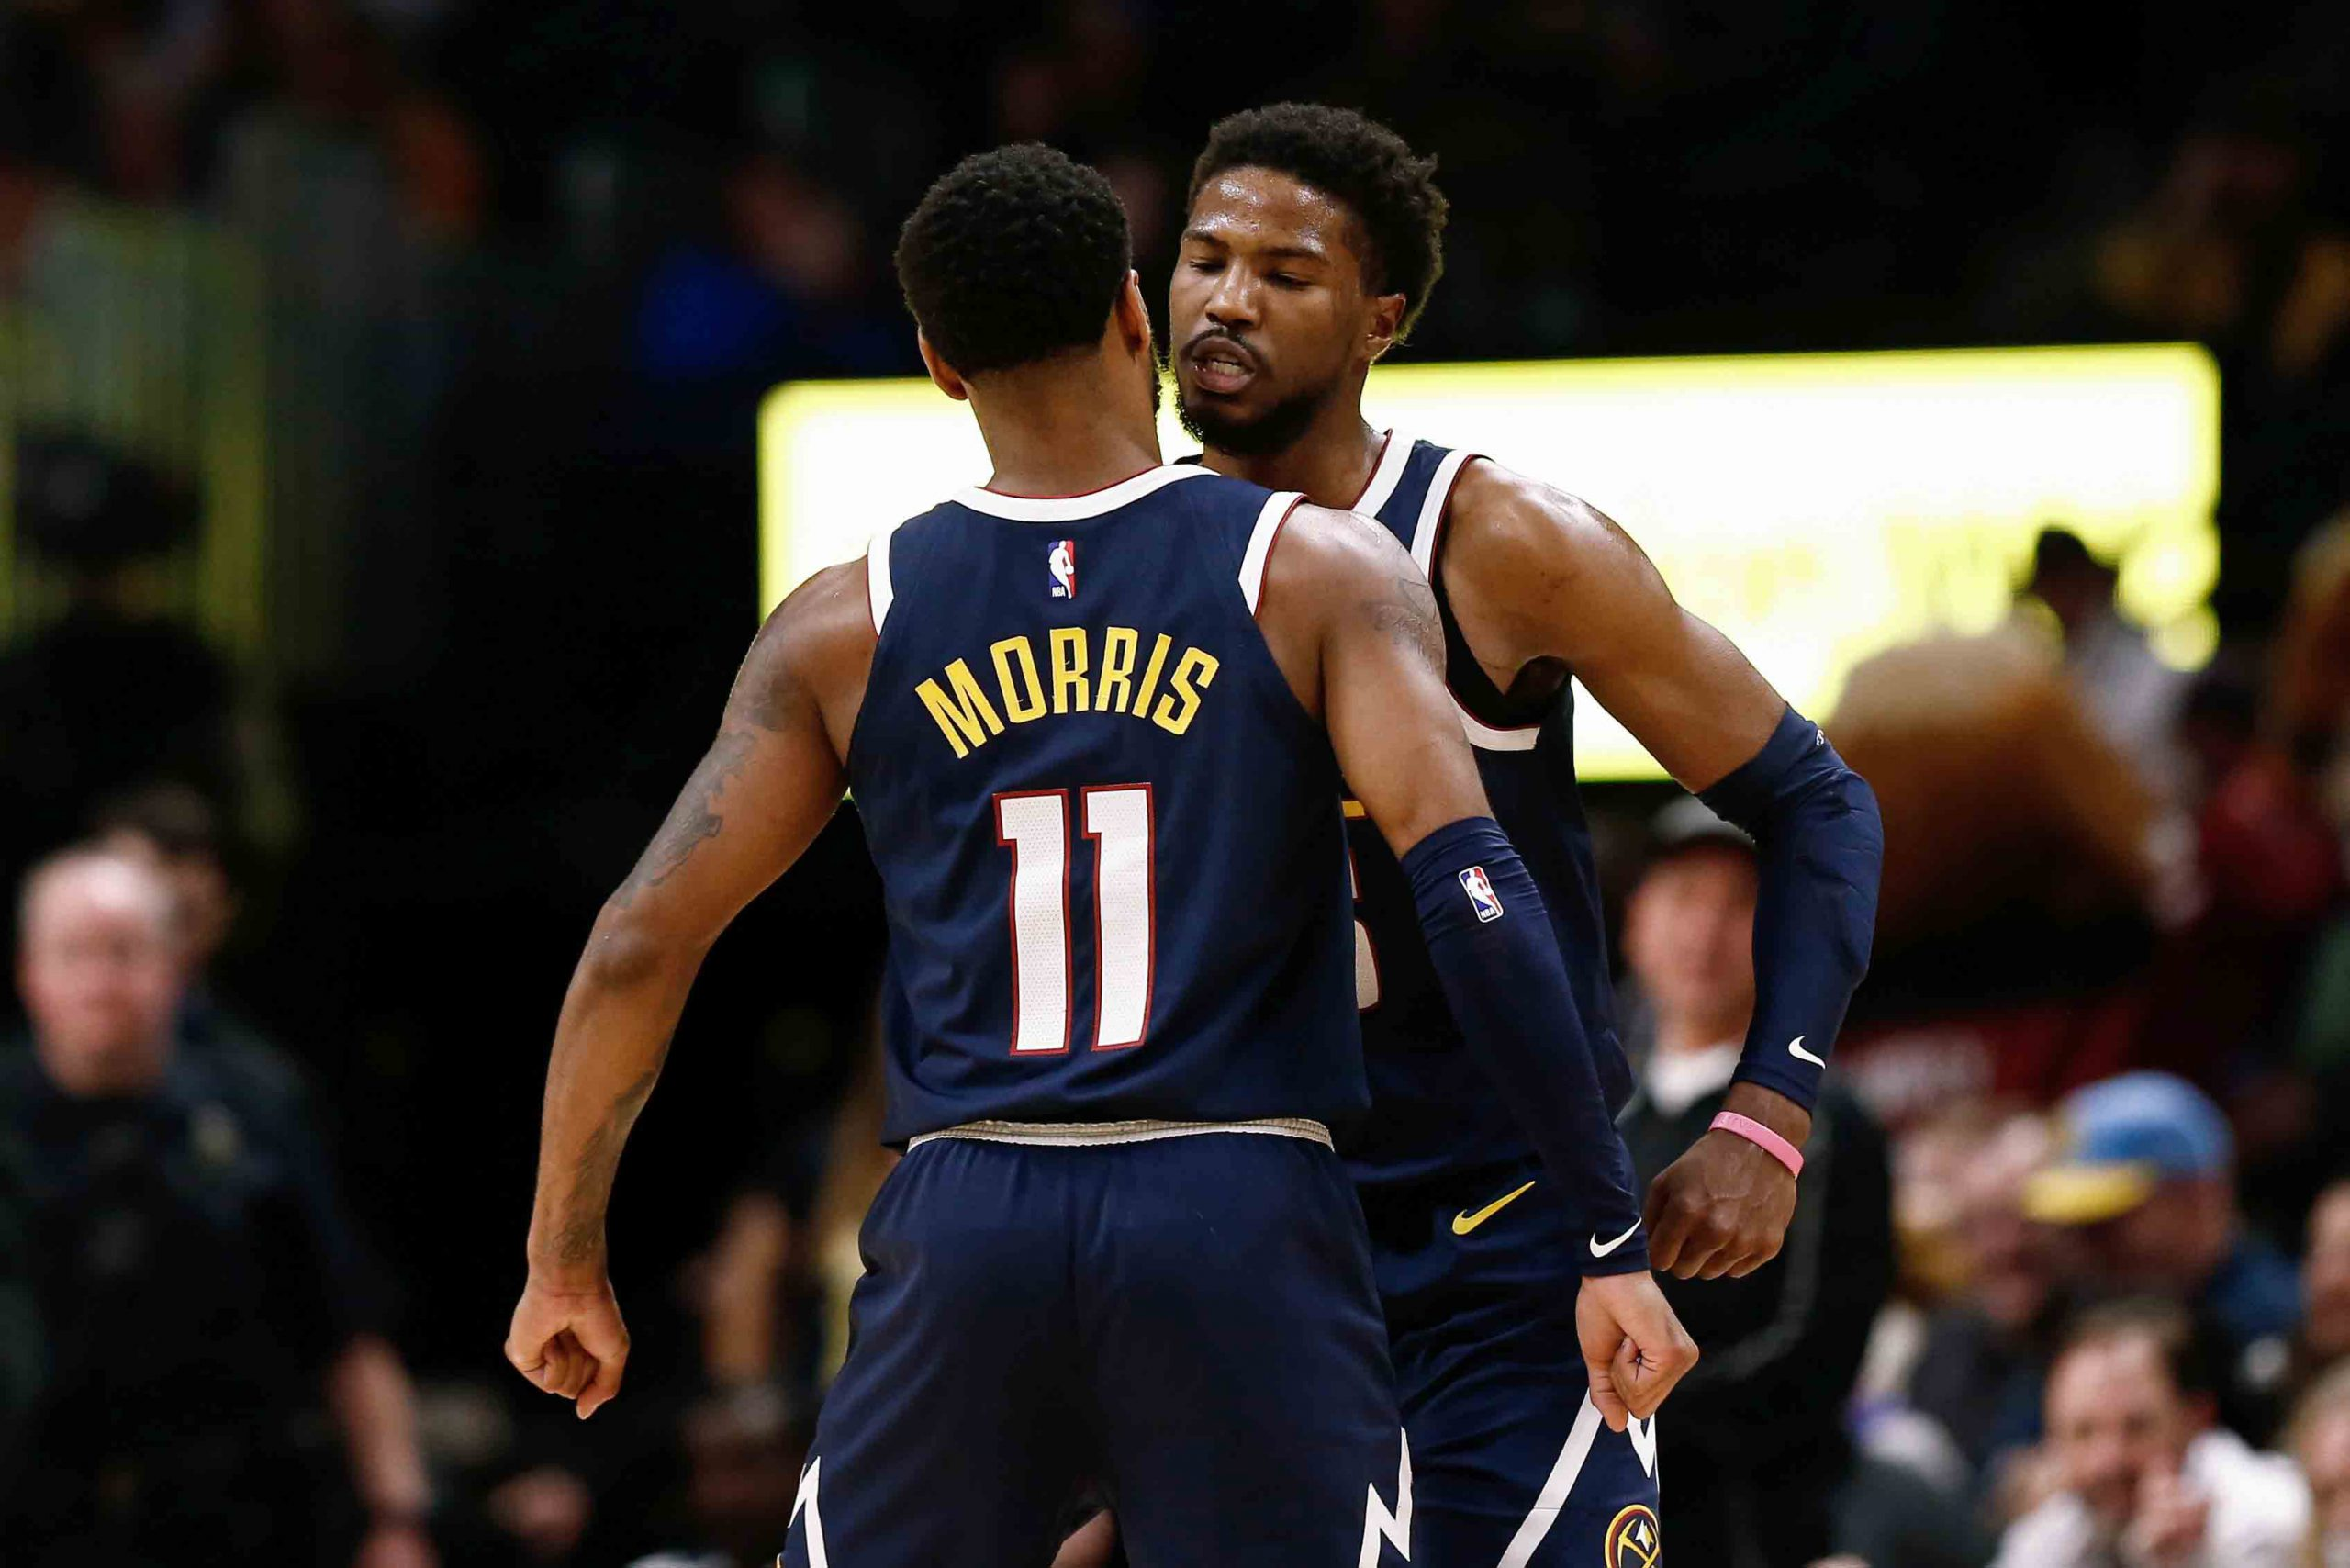 Nov 24, 2019; Denver, CO, USA; Denver Nuggets guard Malik Beasley (25) celebrates with guard Monte Morris (11) after a play in the fourth quarter against the Phoenix Suns at the Pepsi Center. Mandatory Credit: Isaiah J. Downing-USA TODAY Sports